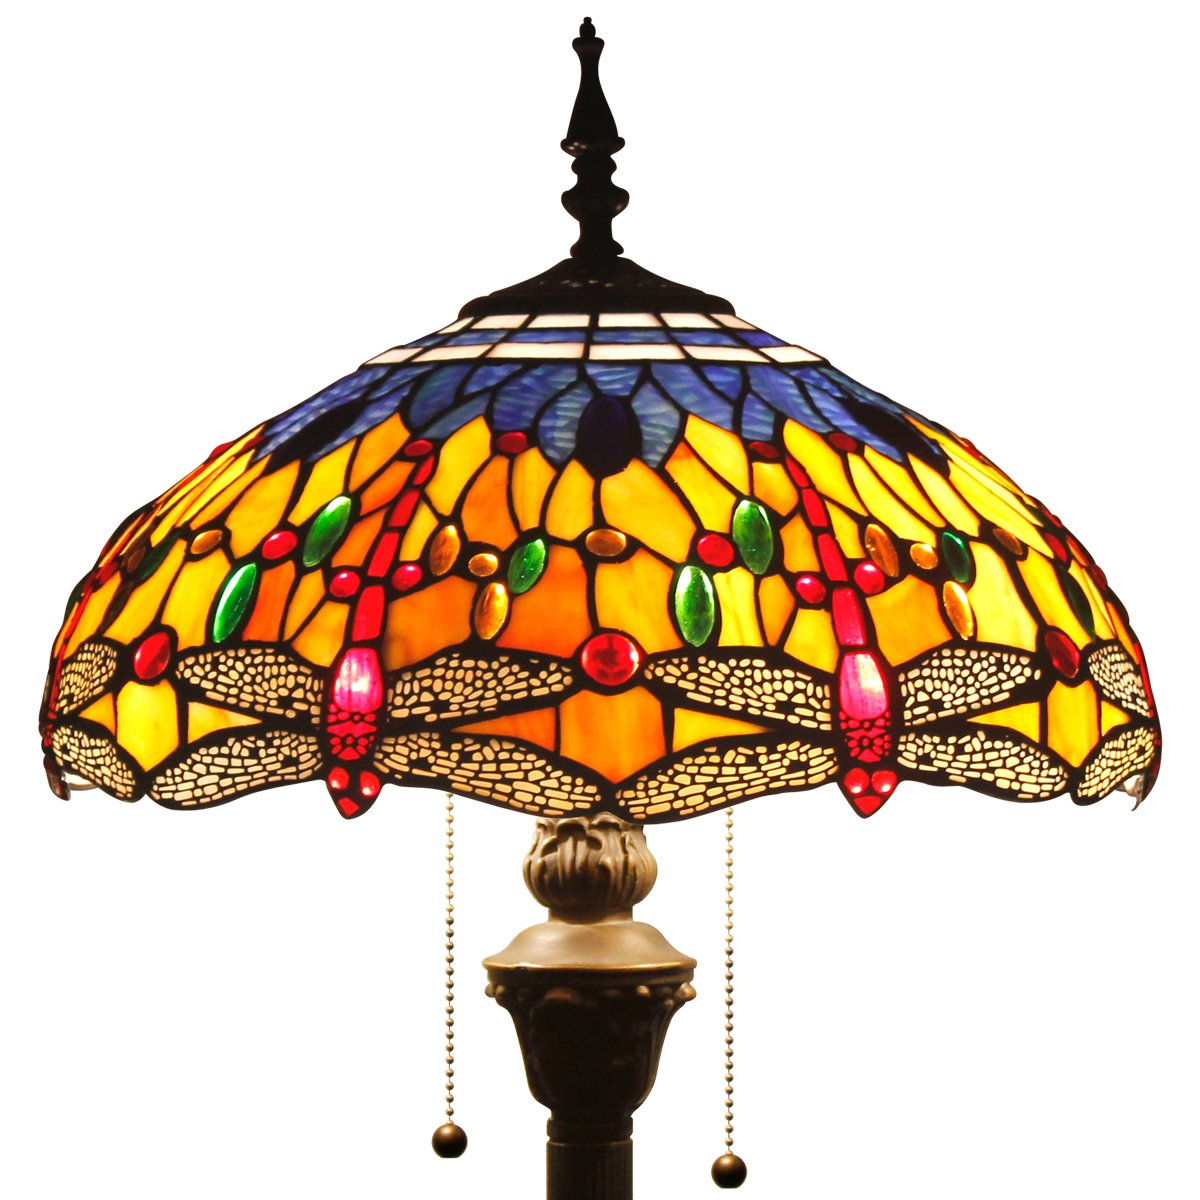 Tiffany Style Floor Standing Lamp 64 Inch Tall Orange Blue Stained Glass Shade Crystal Bead Dragonfly 2 Light Antique Base for Bedroom Living Room Reading Lighting Table Set S168 WERFACTORY